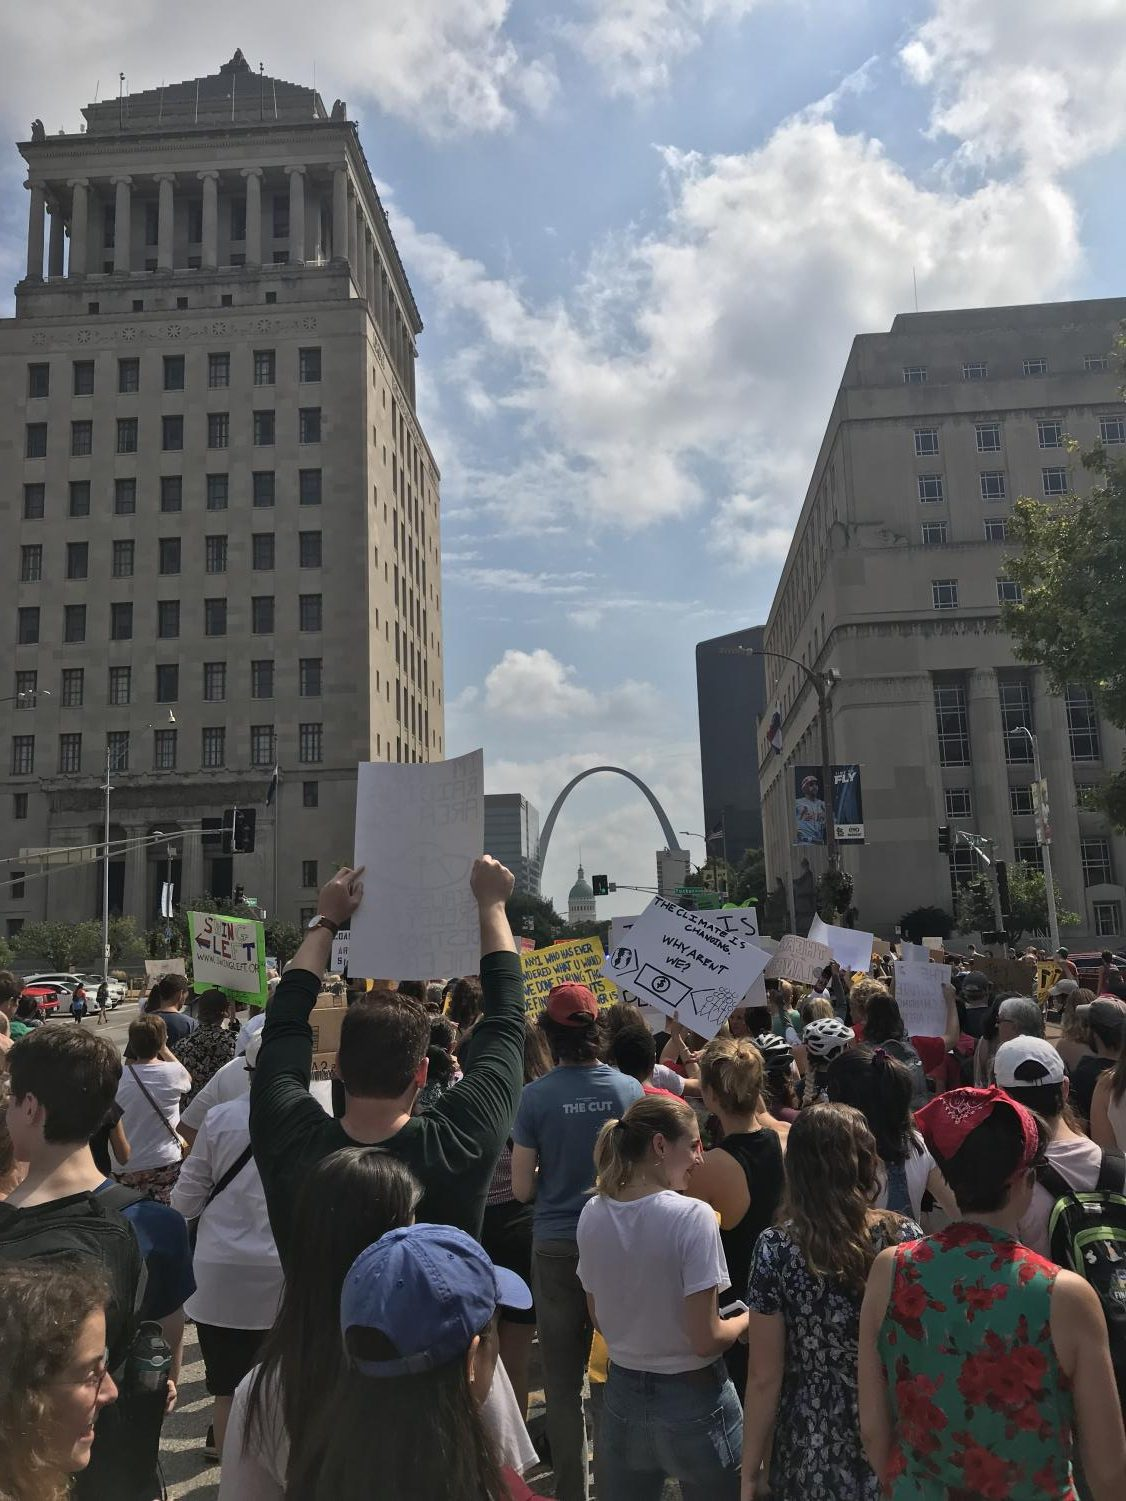 St. Louis participated in a climate march on Friday, September 20. The march took place on Market Street in downtown St. Louis.